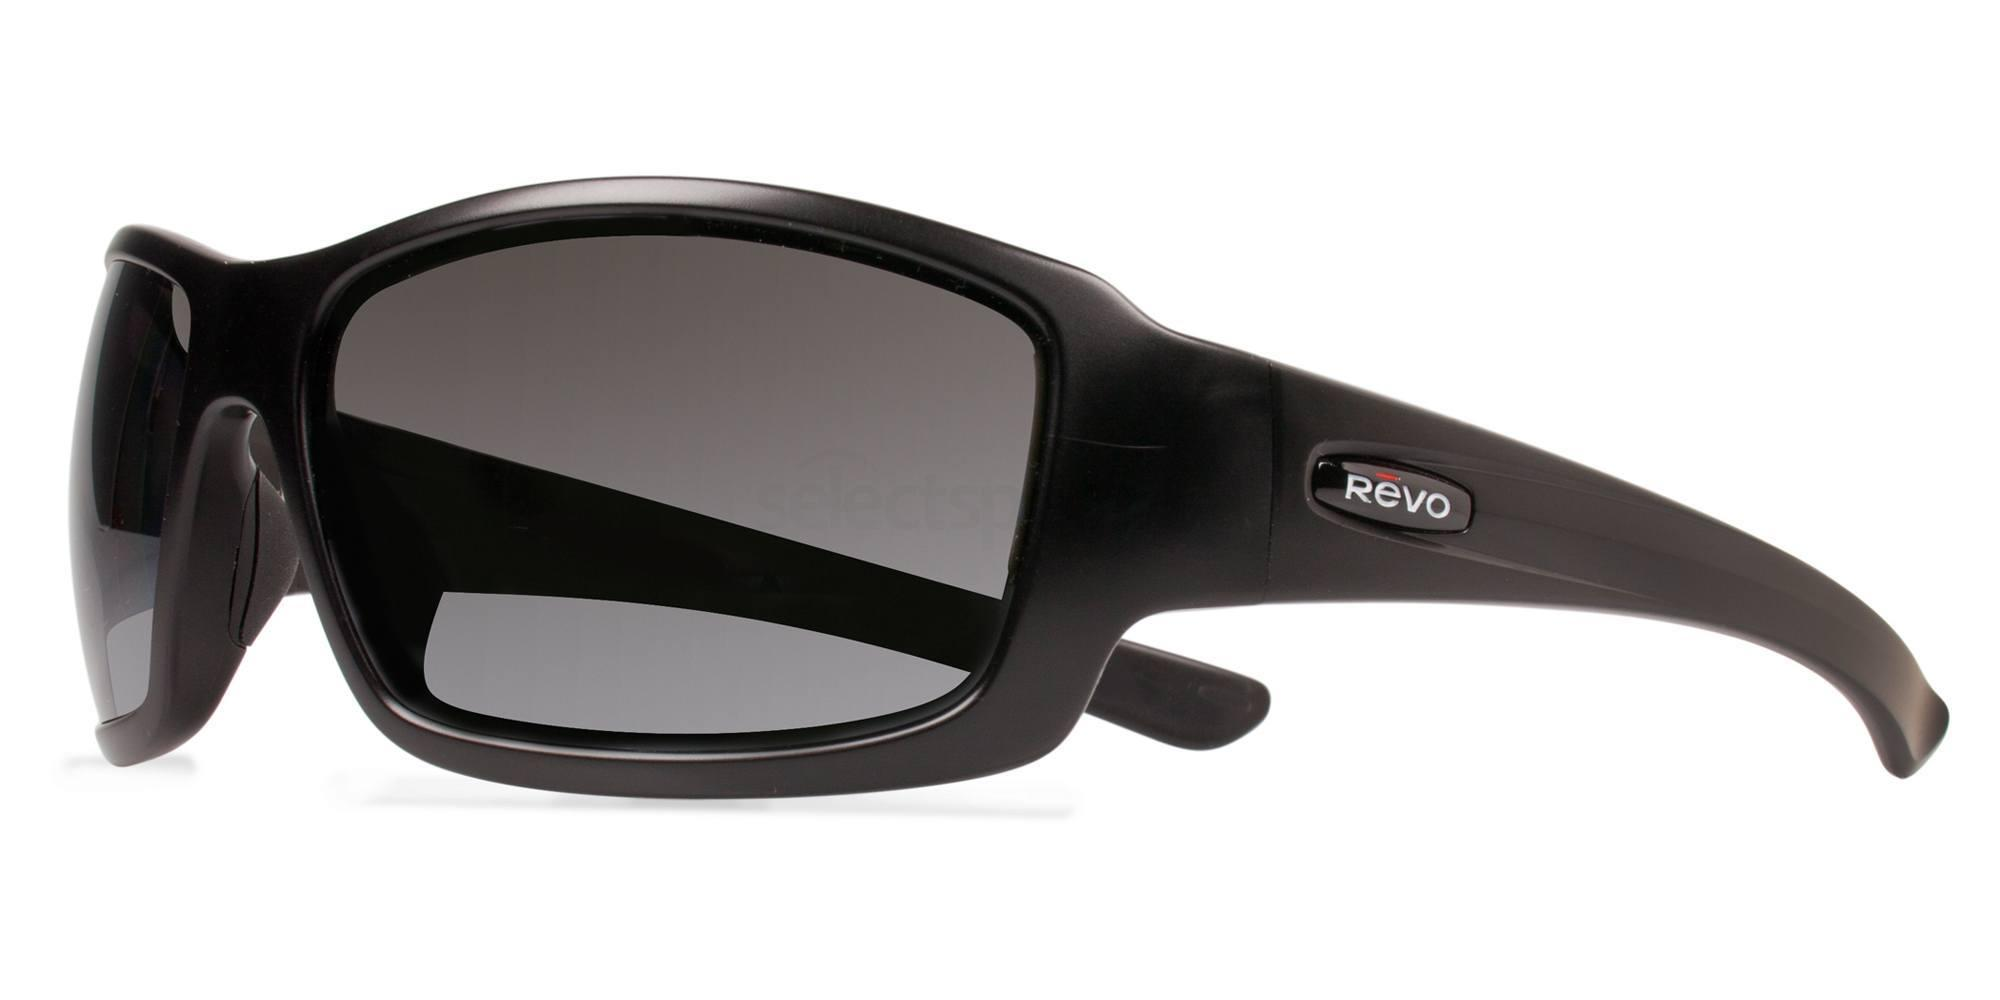 Revo Bearing RE4057 sunglasses